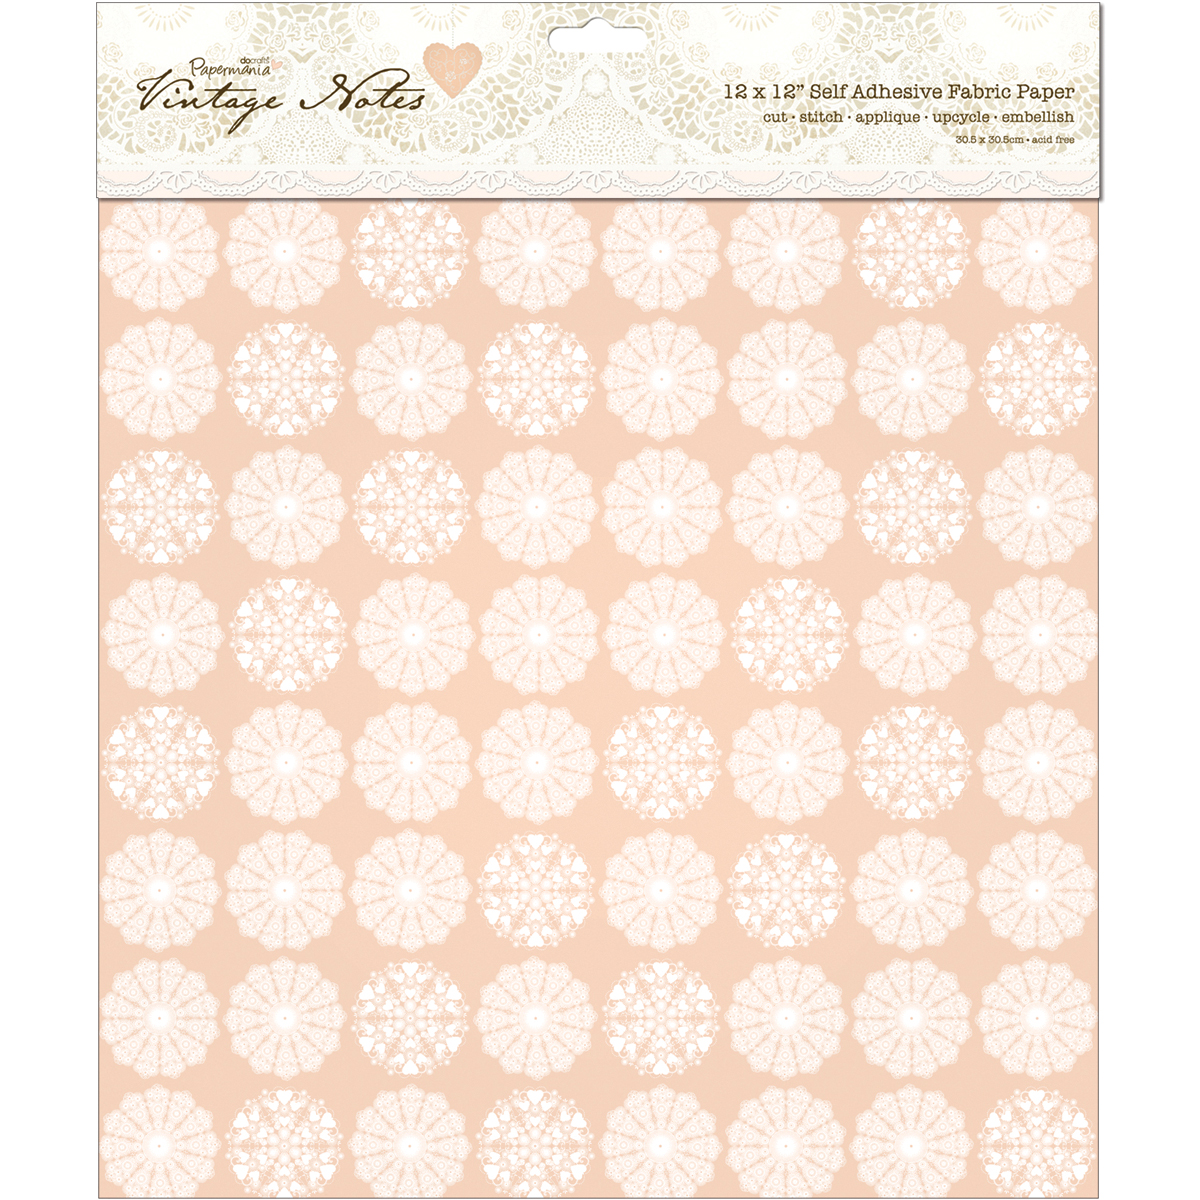 "Papermania Vintage Notes Filigree Self-Adhesive Fabric Paper 12""x12"""